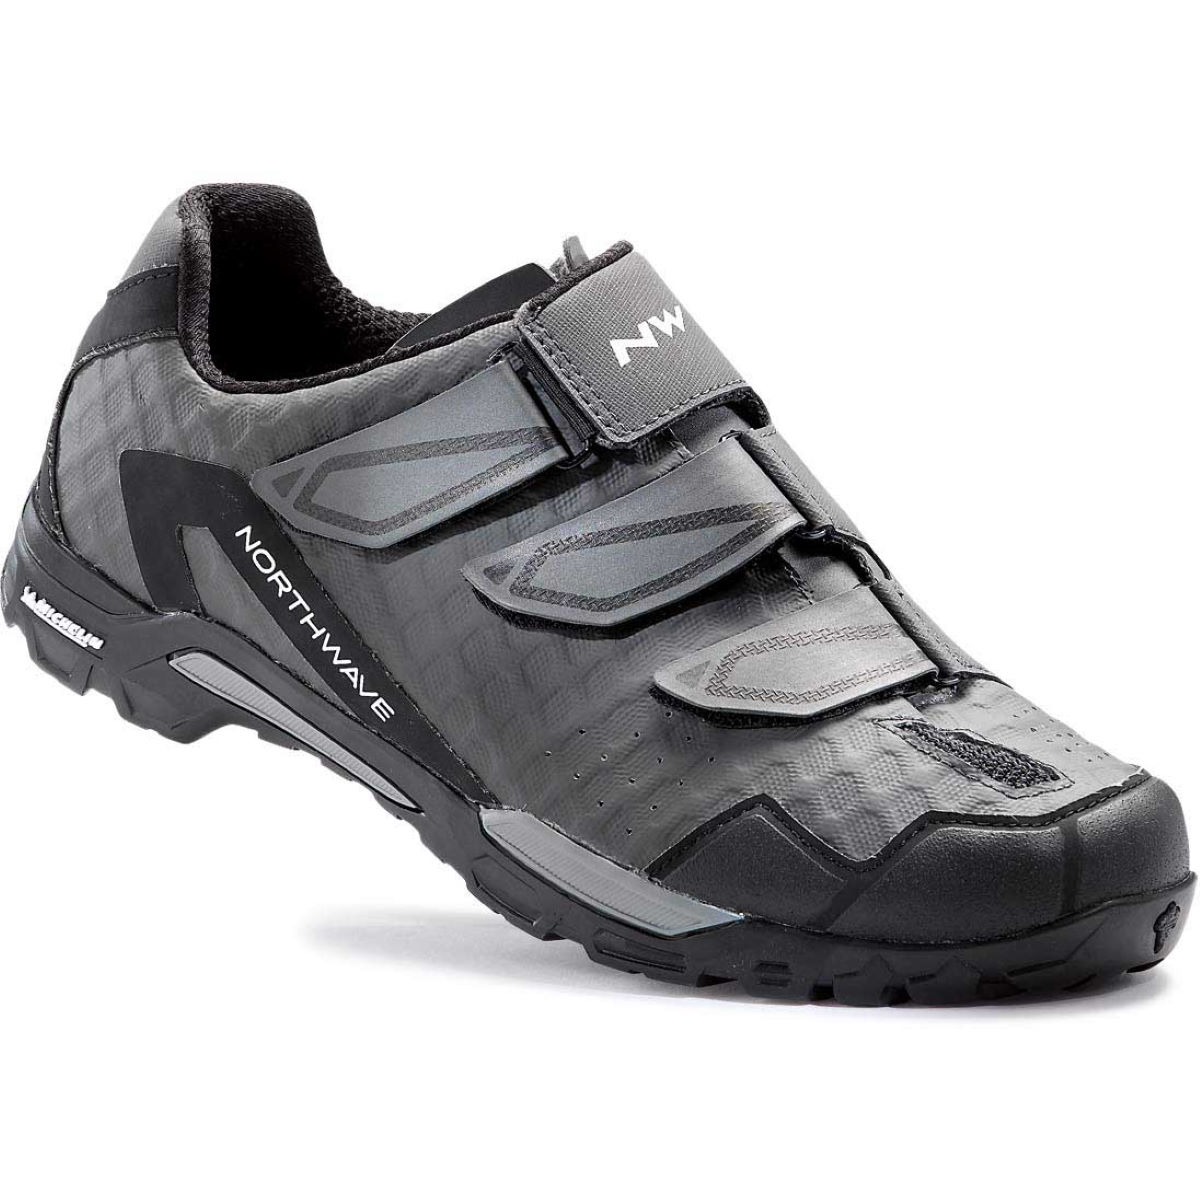 Chaussures Northwave Outcross 3V - 39 Anthracite Chaussures de vélo